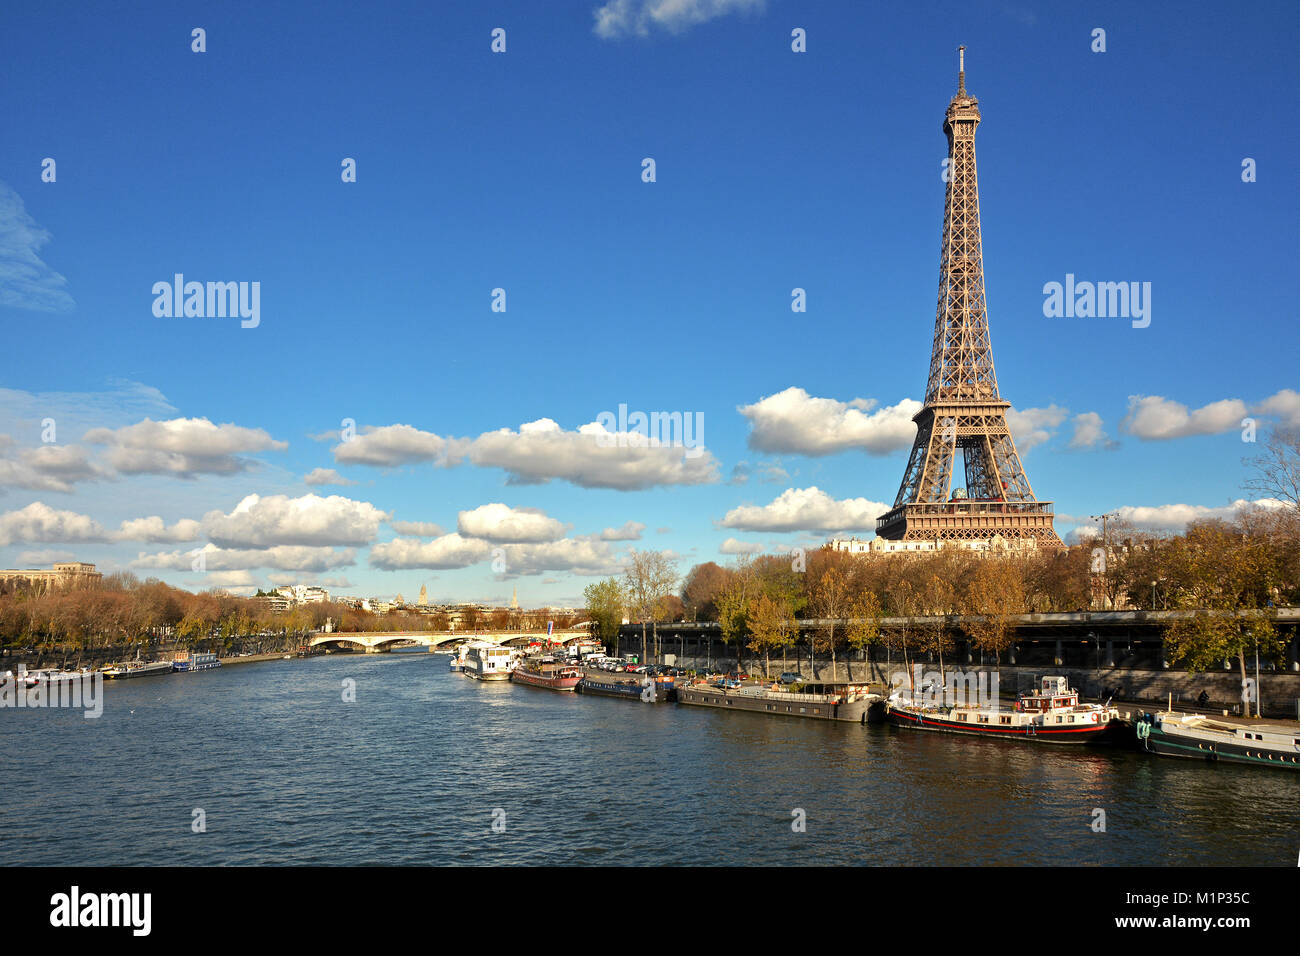 Eiffel Tower, Paris, France, Europe - Stock Image